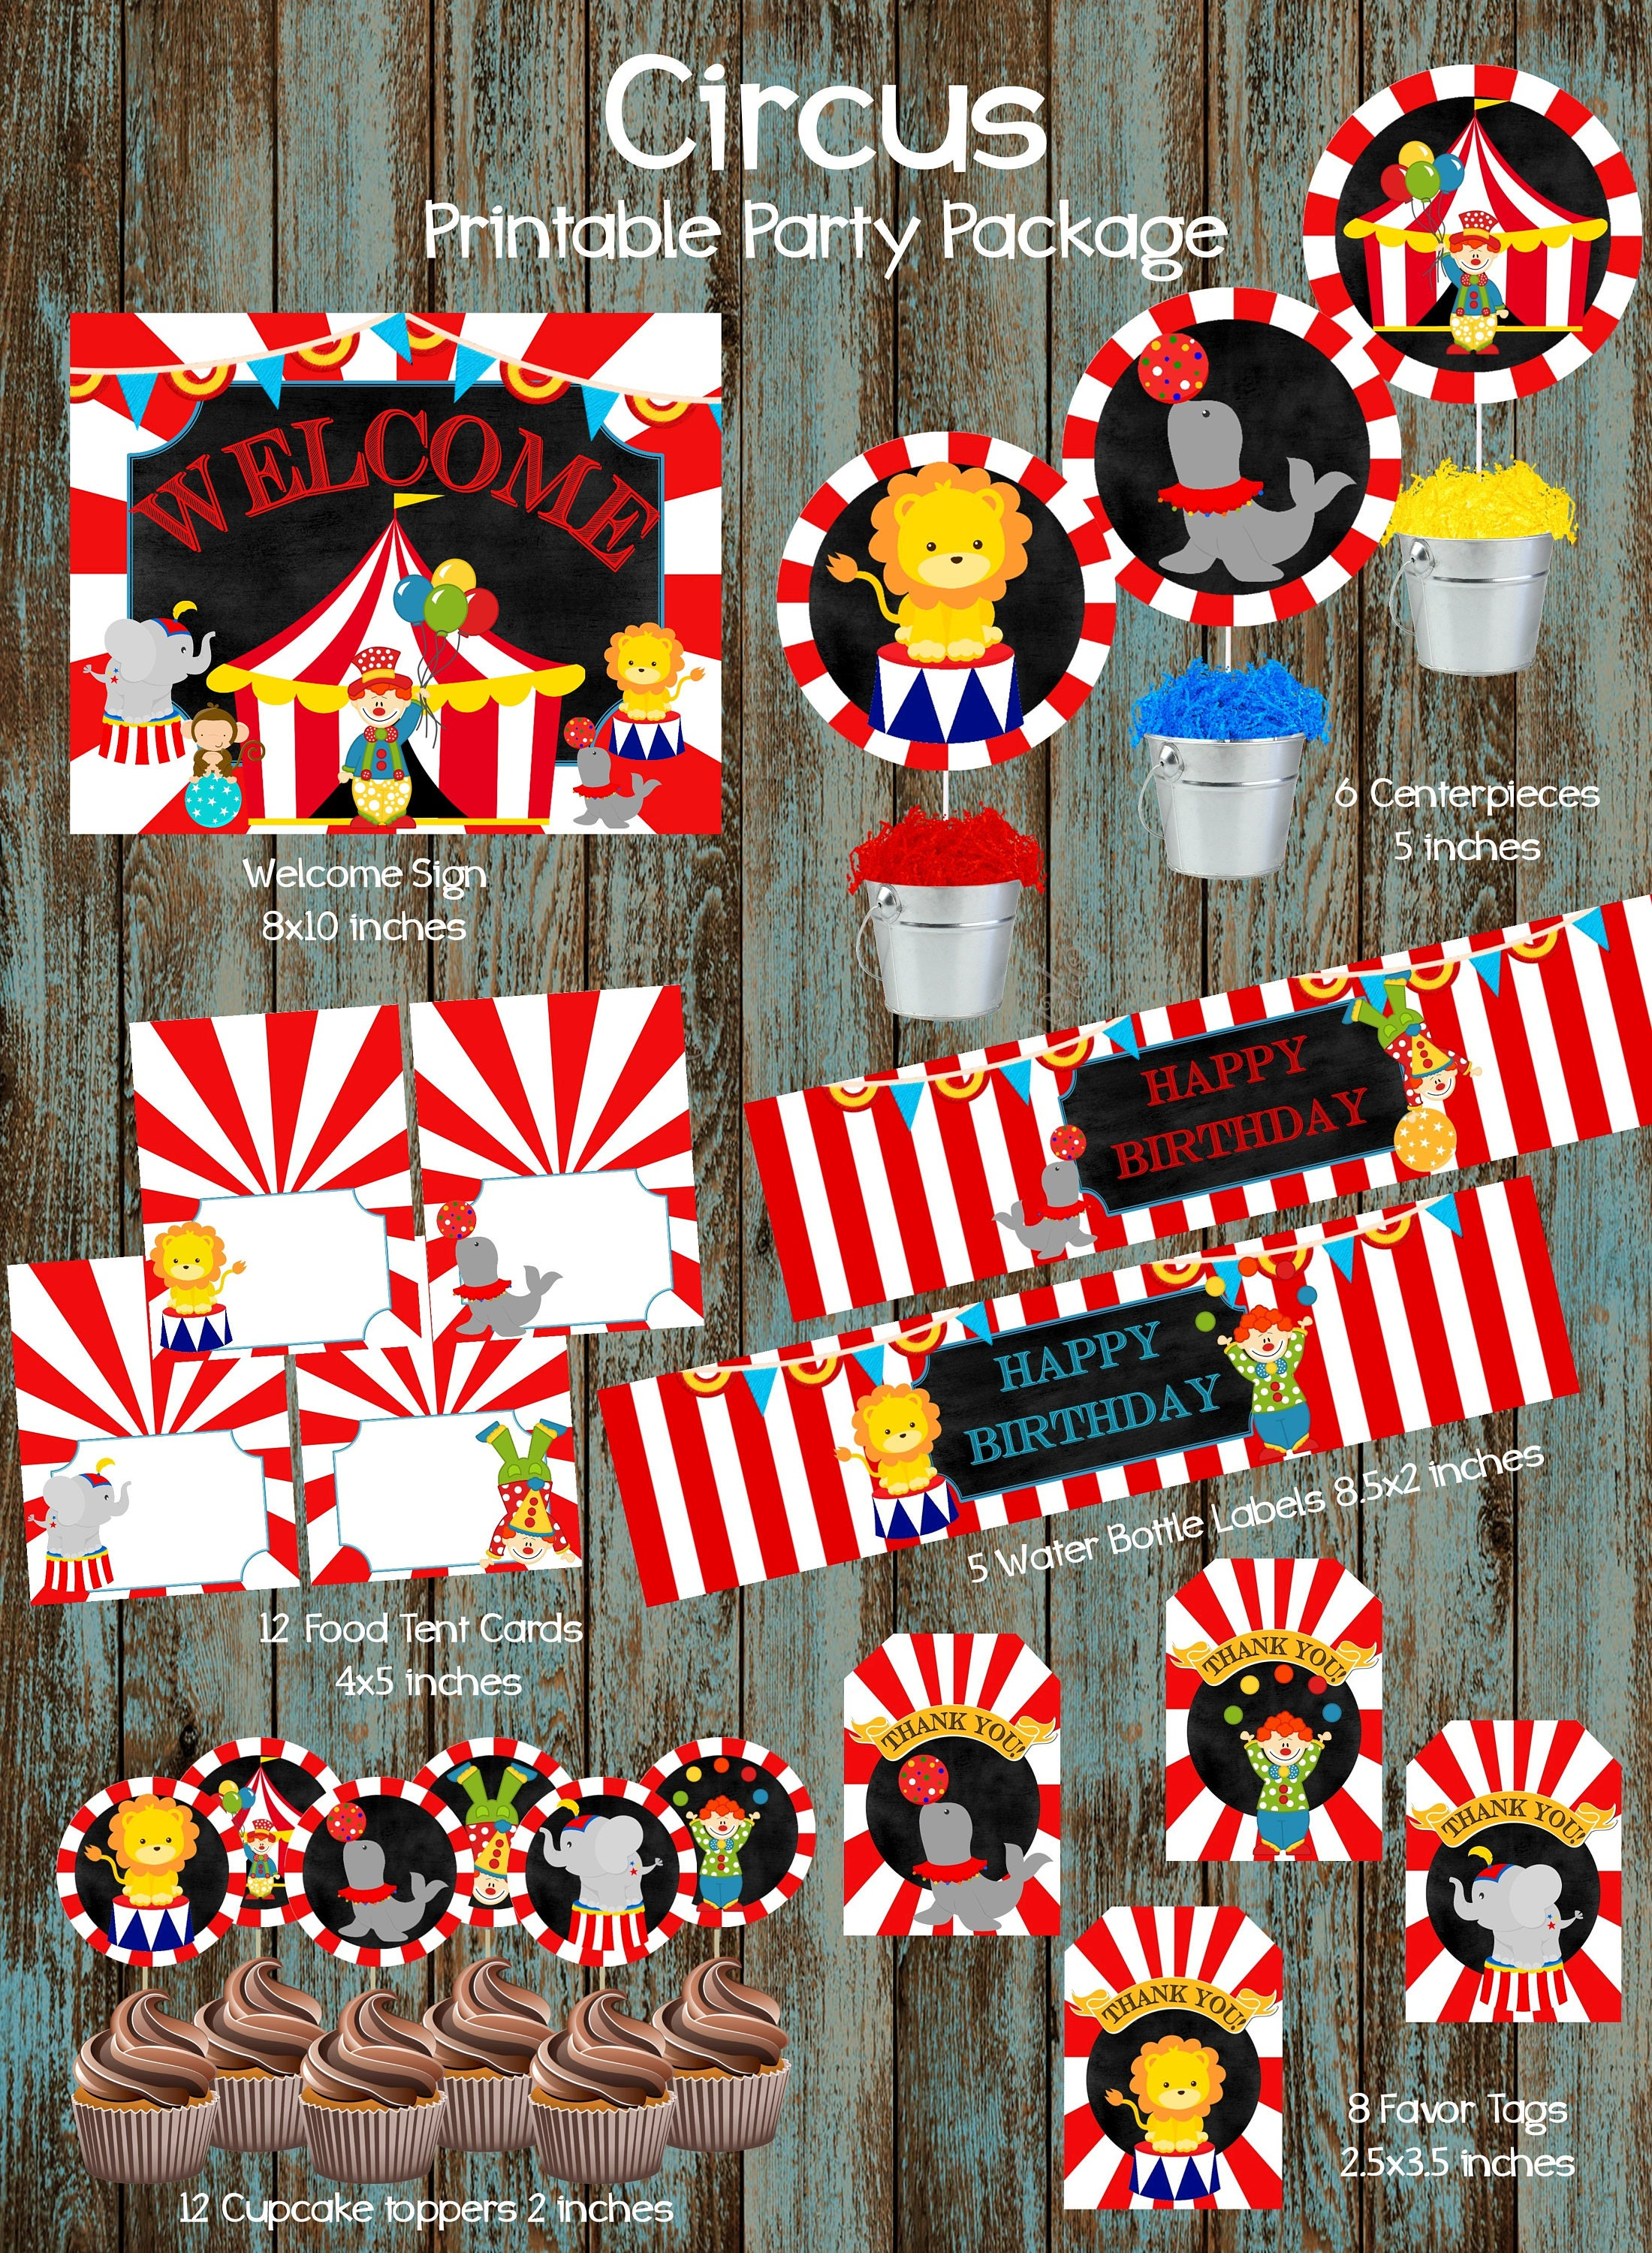 theme carnival themes decorations circus parties rides decor party